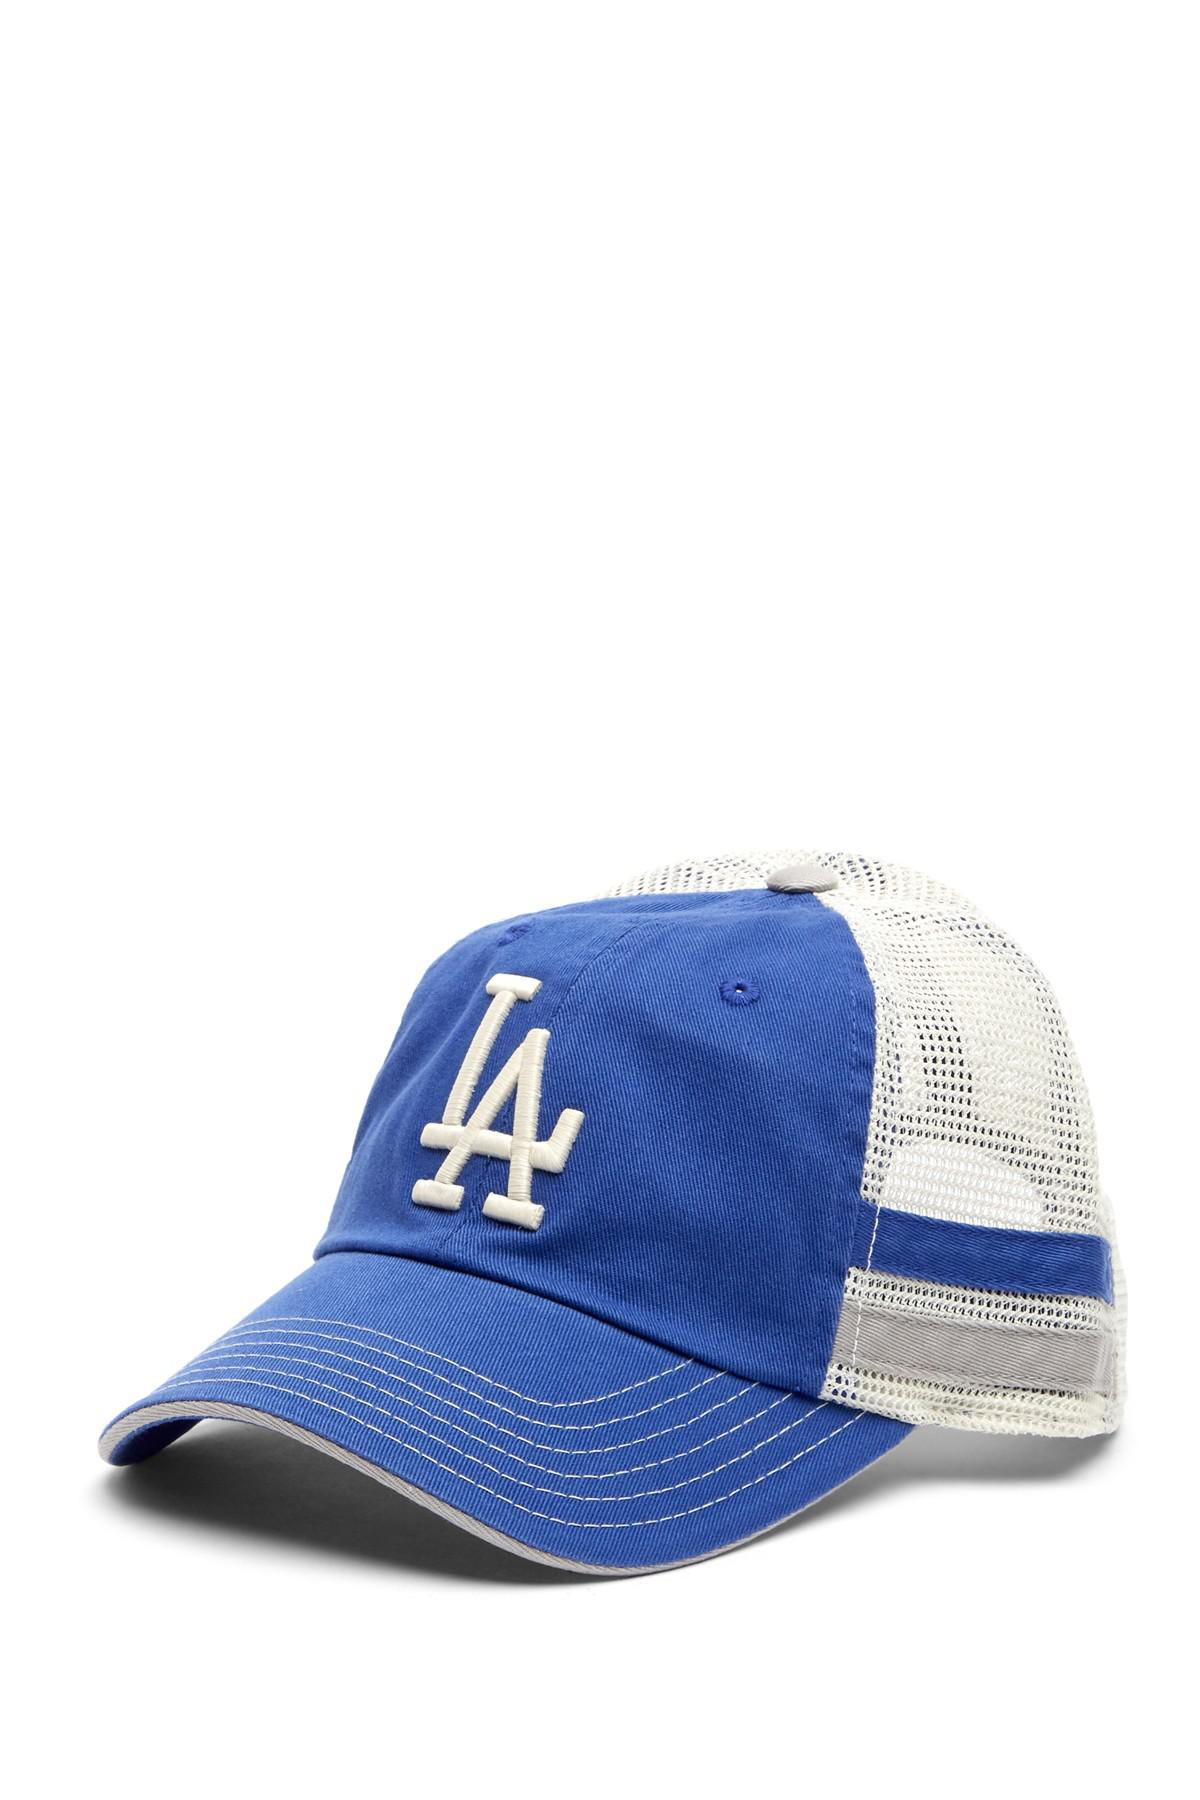 d717fc3a2f7 Lyst - American Needle Foundry Los Angeles Dodgers Mesh Back ...